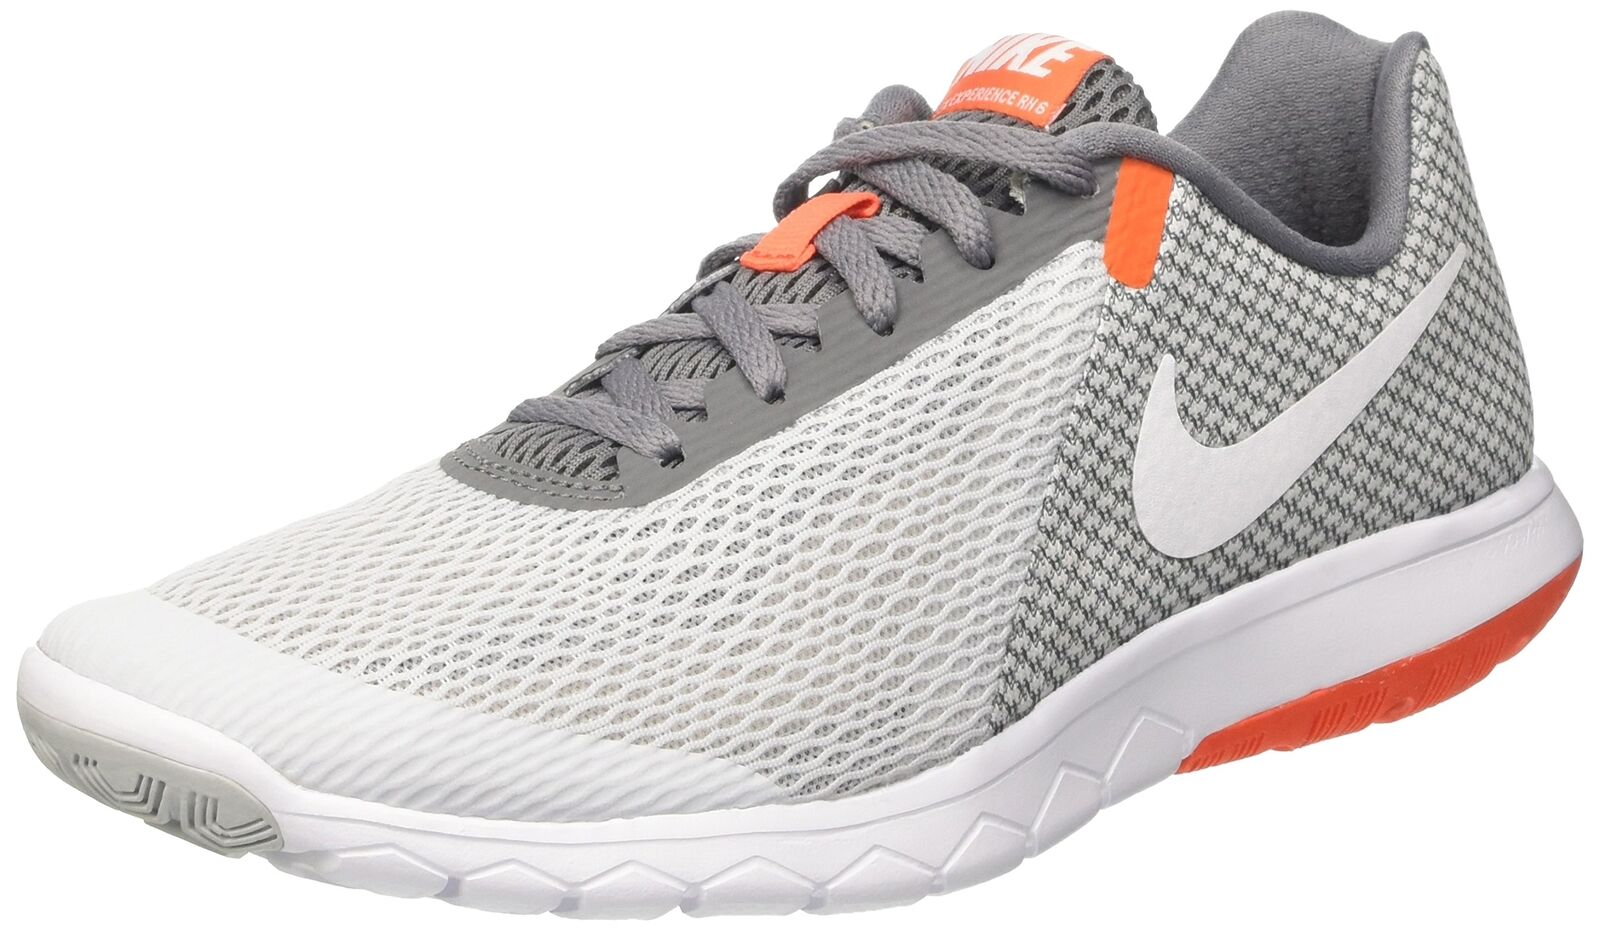 NIKE Men's Flex Experience RN 6 Running Shoes Pure Platinum/White/Cool Grey